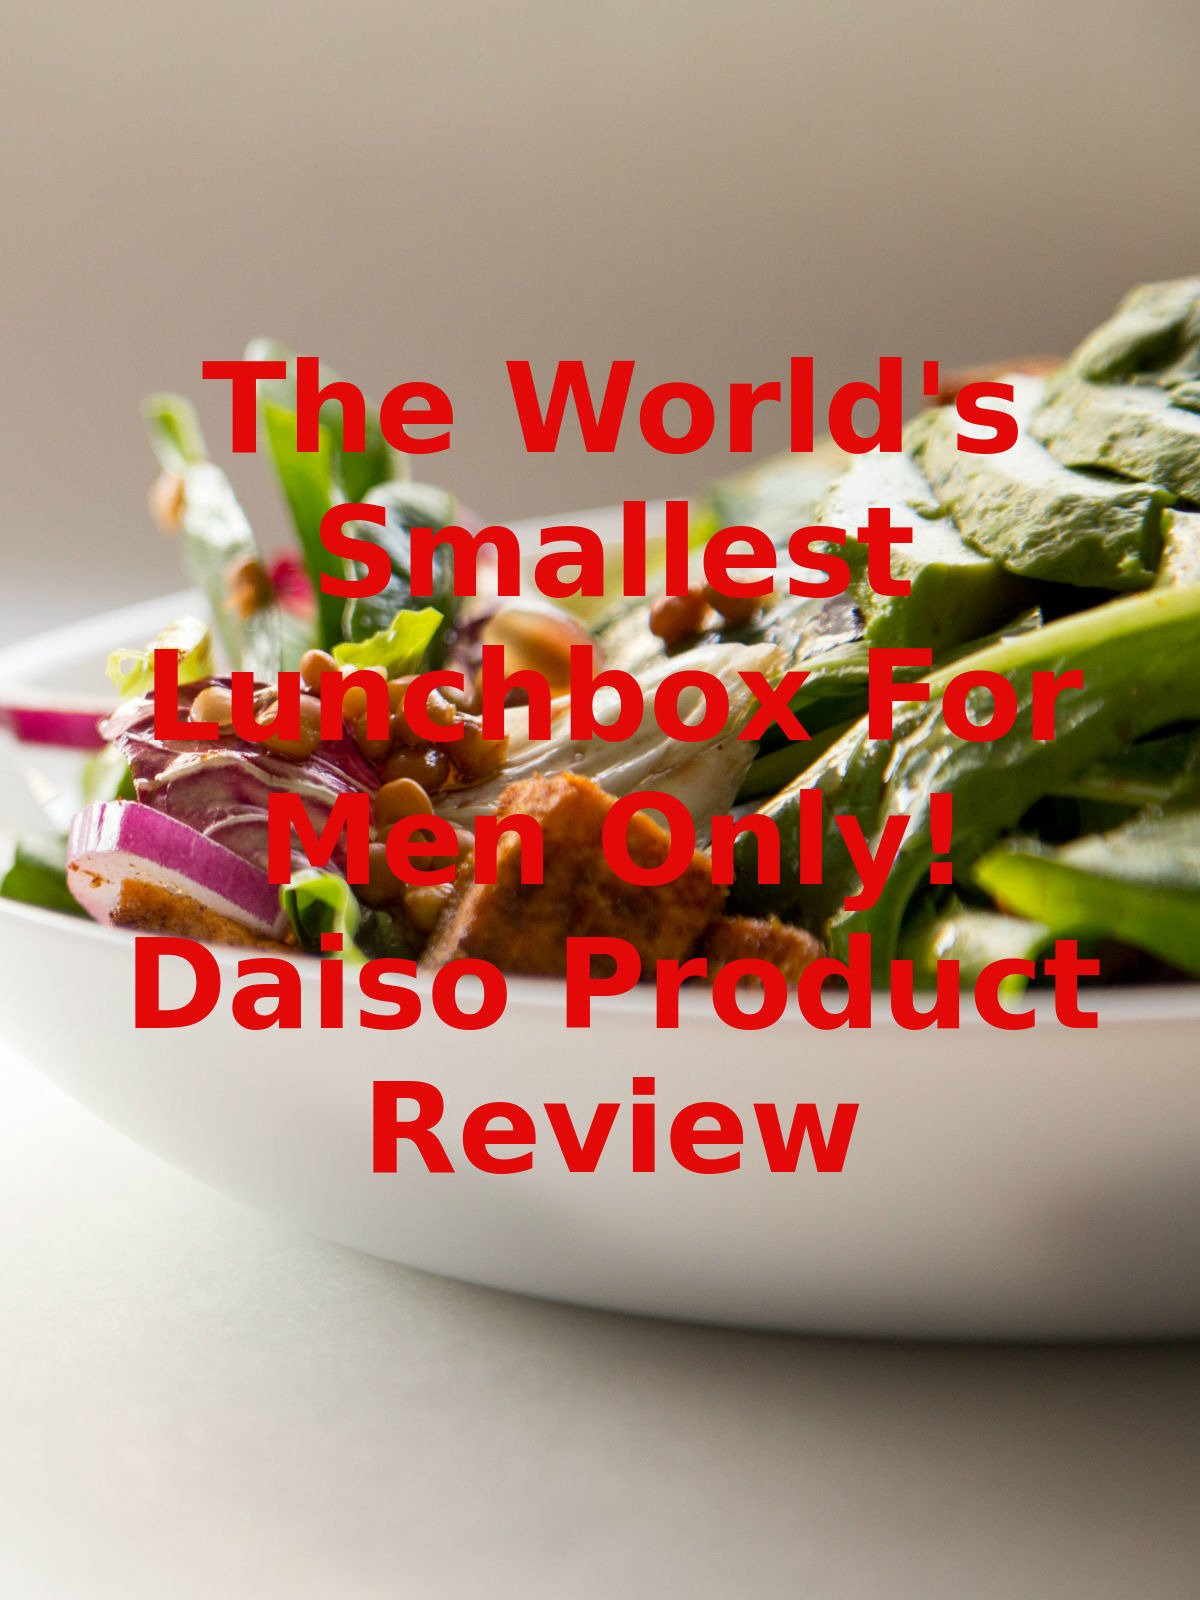 Review: The World's Smallest Lunchbox For Men Only! Daiso Product Review